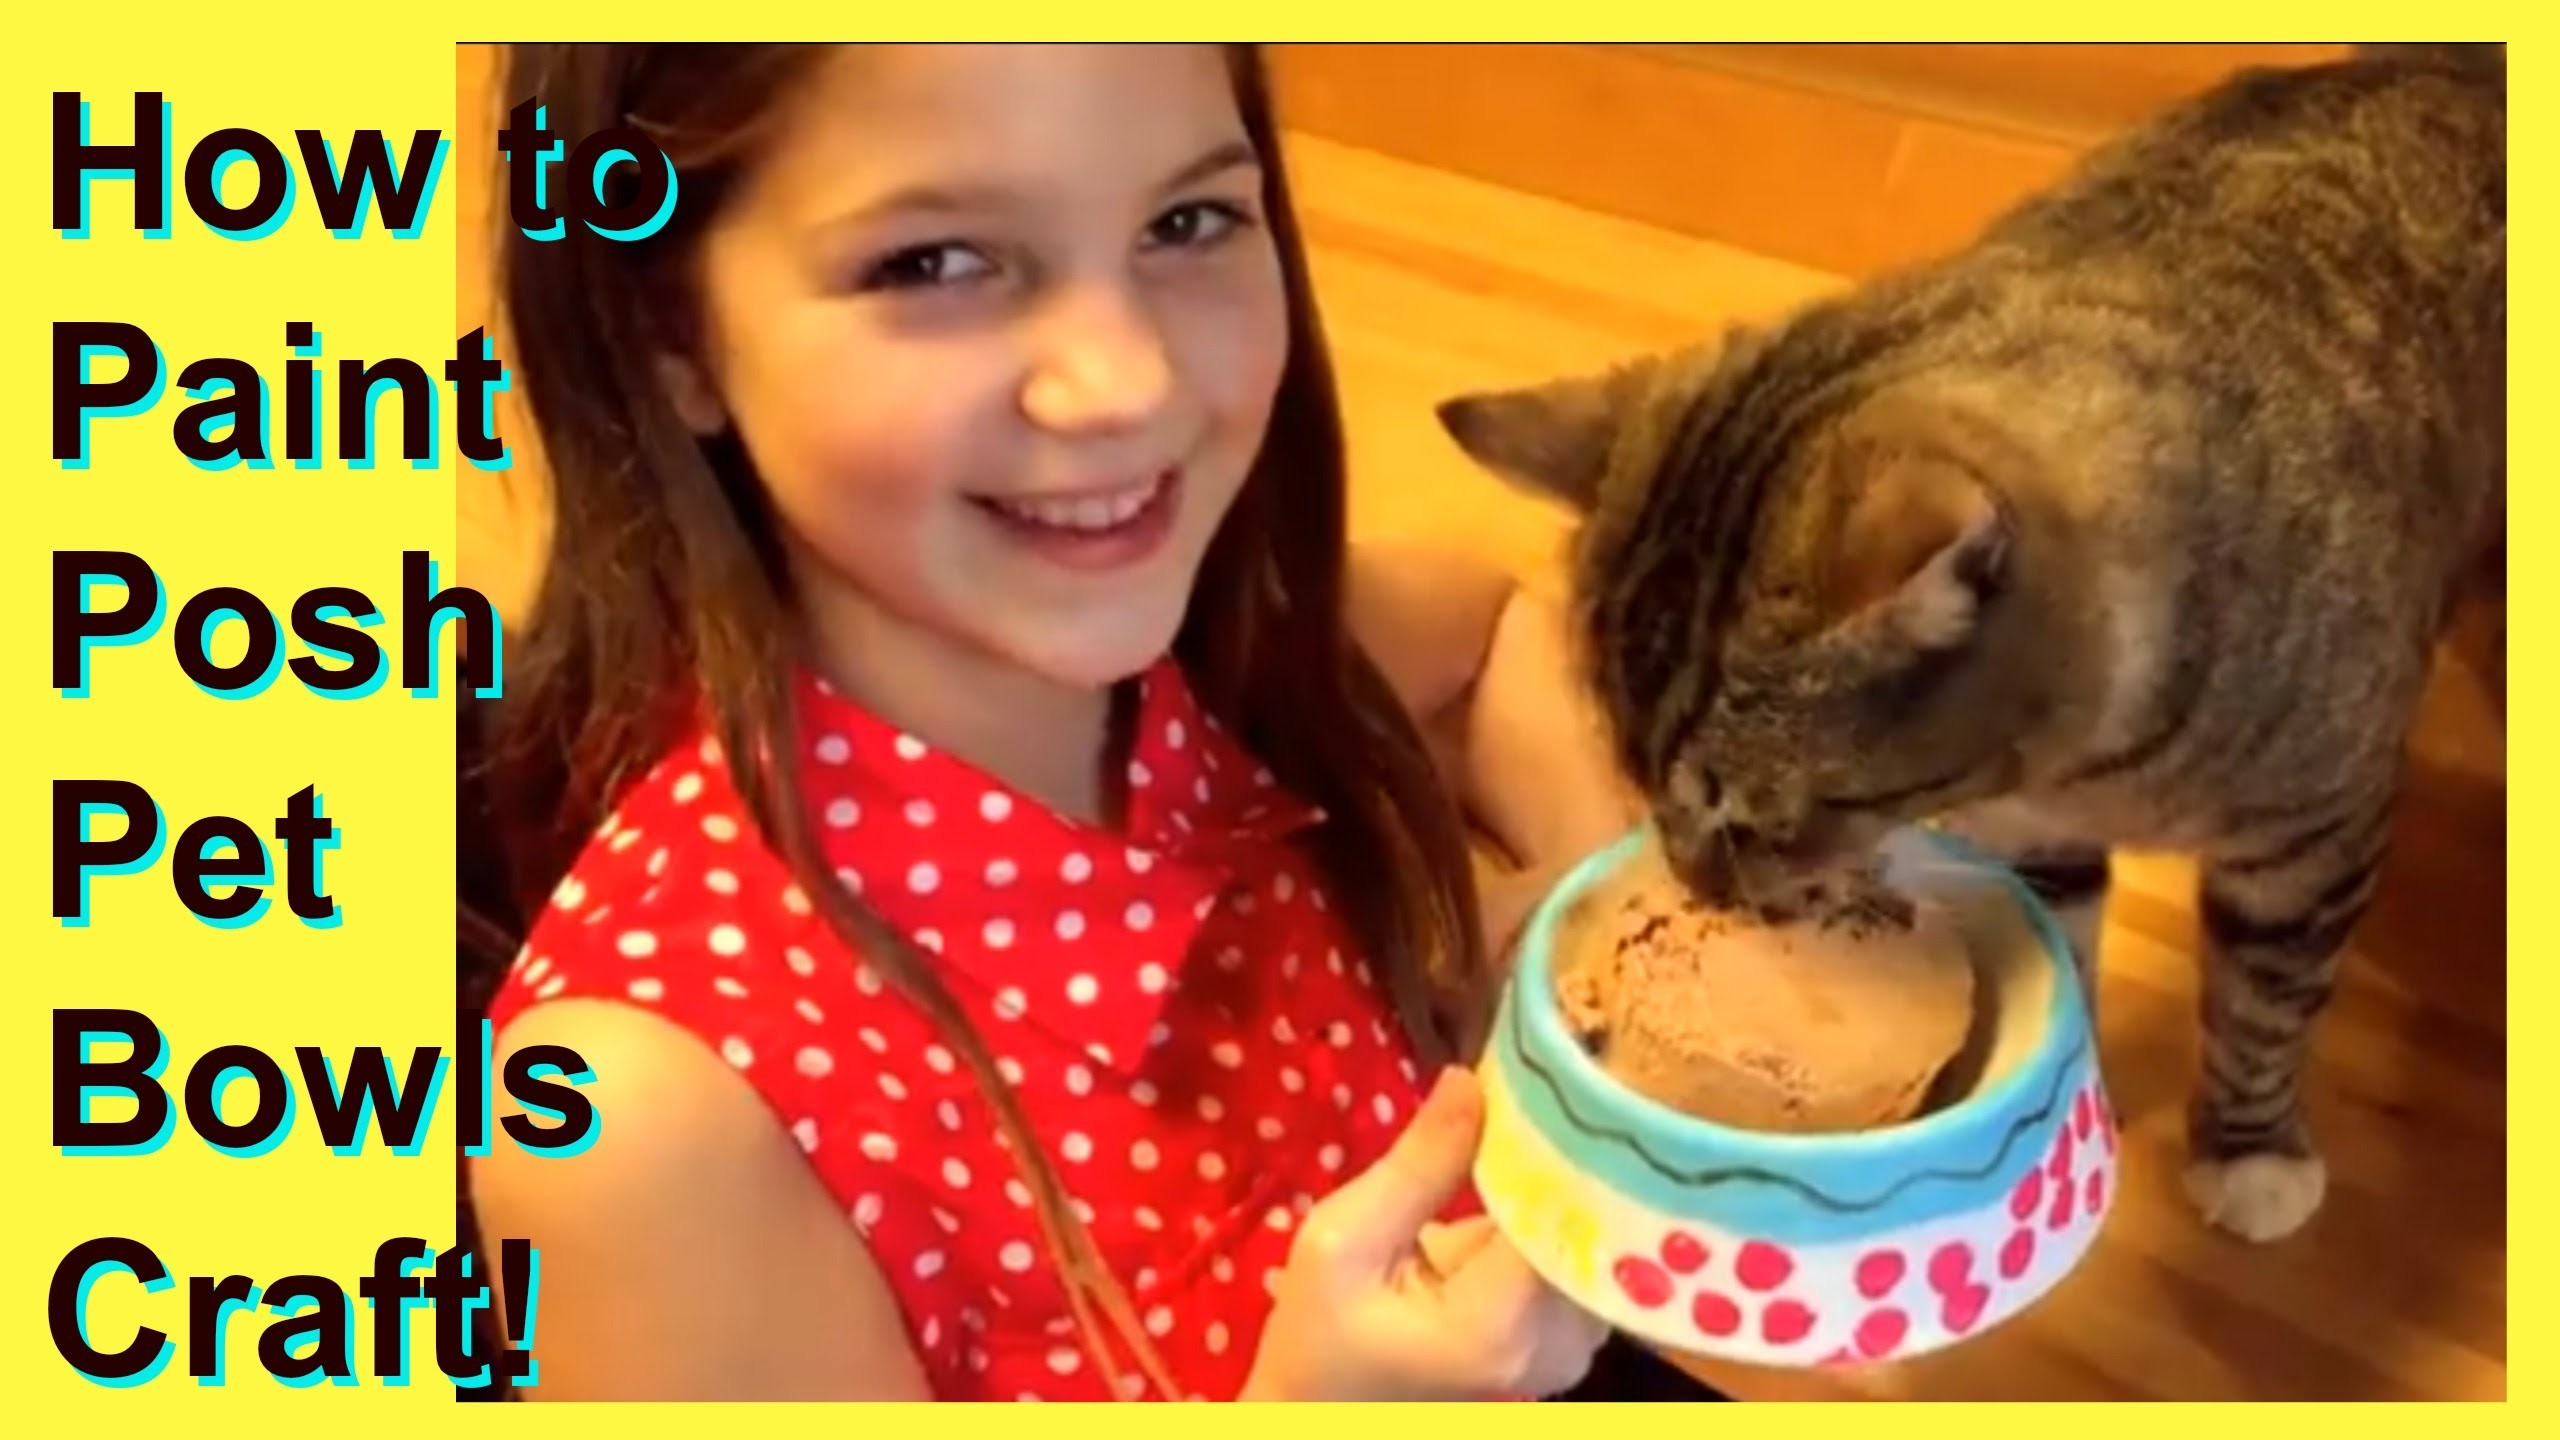 DIY Pet Projects Dog and Cat Bowls Craft | Paint Personalized Posh Pet Bowls